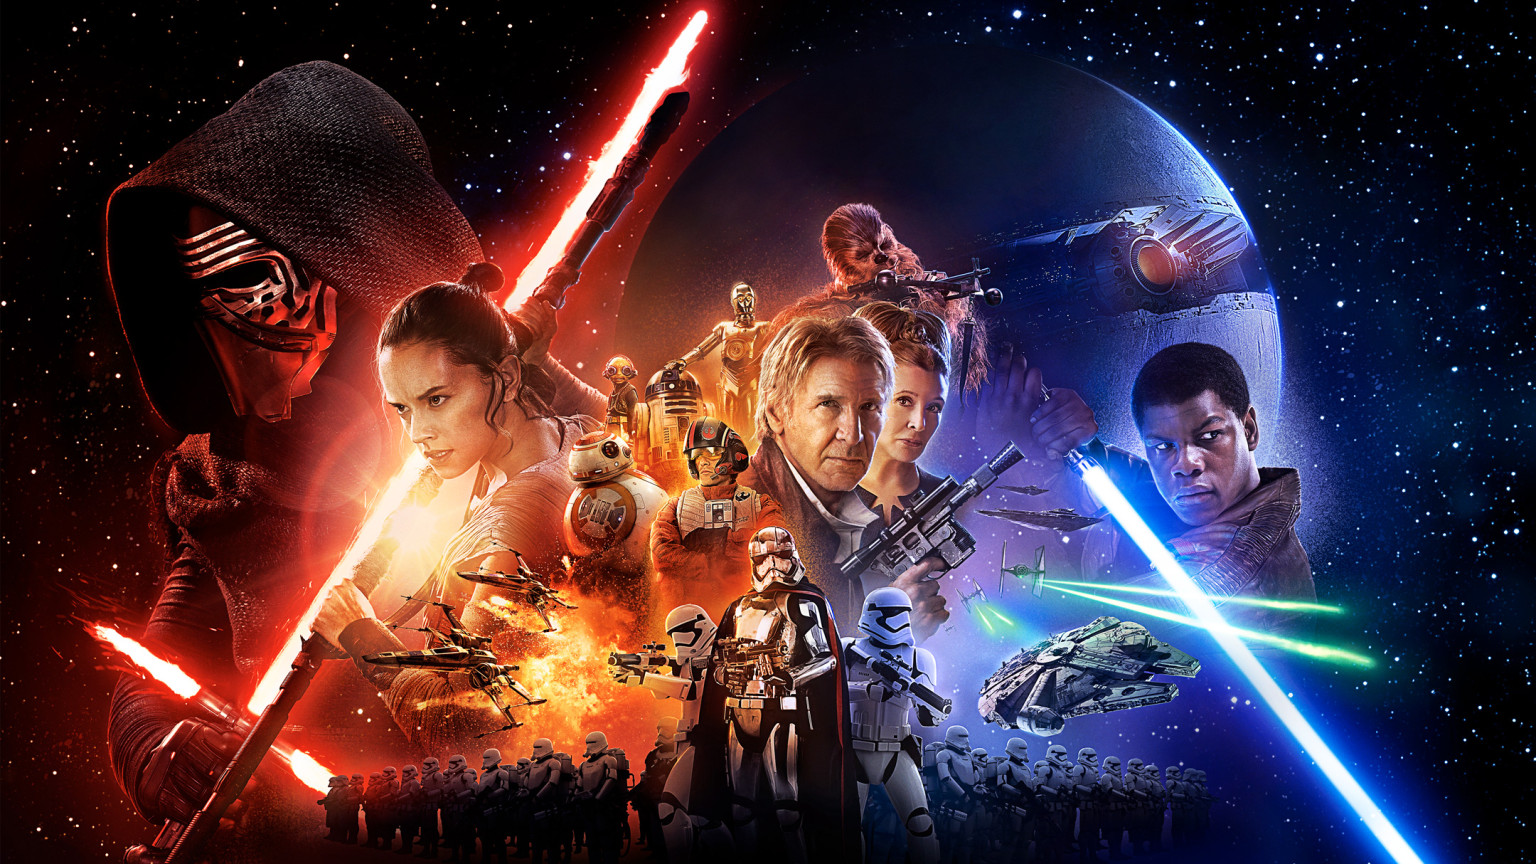 Spoiler-free Review: Star Wars: The Force Awakens